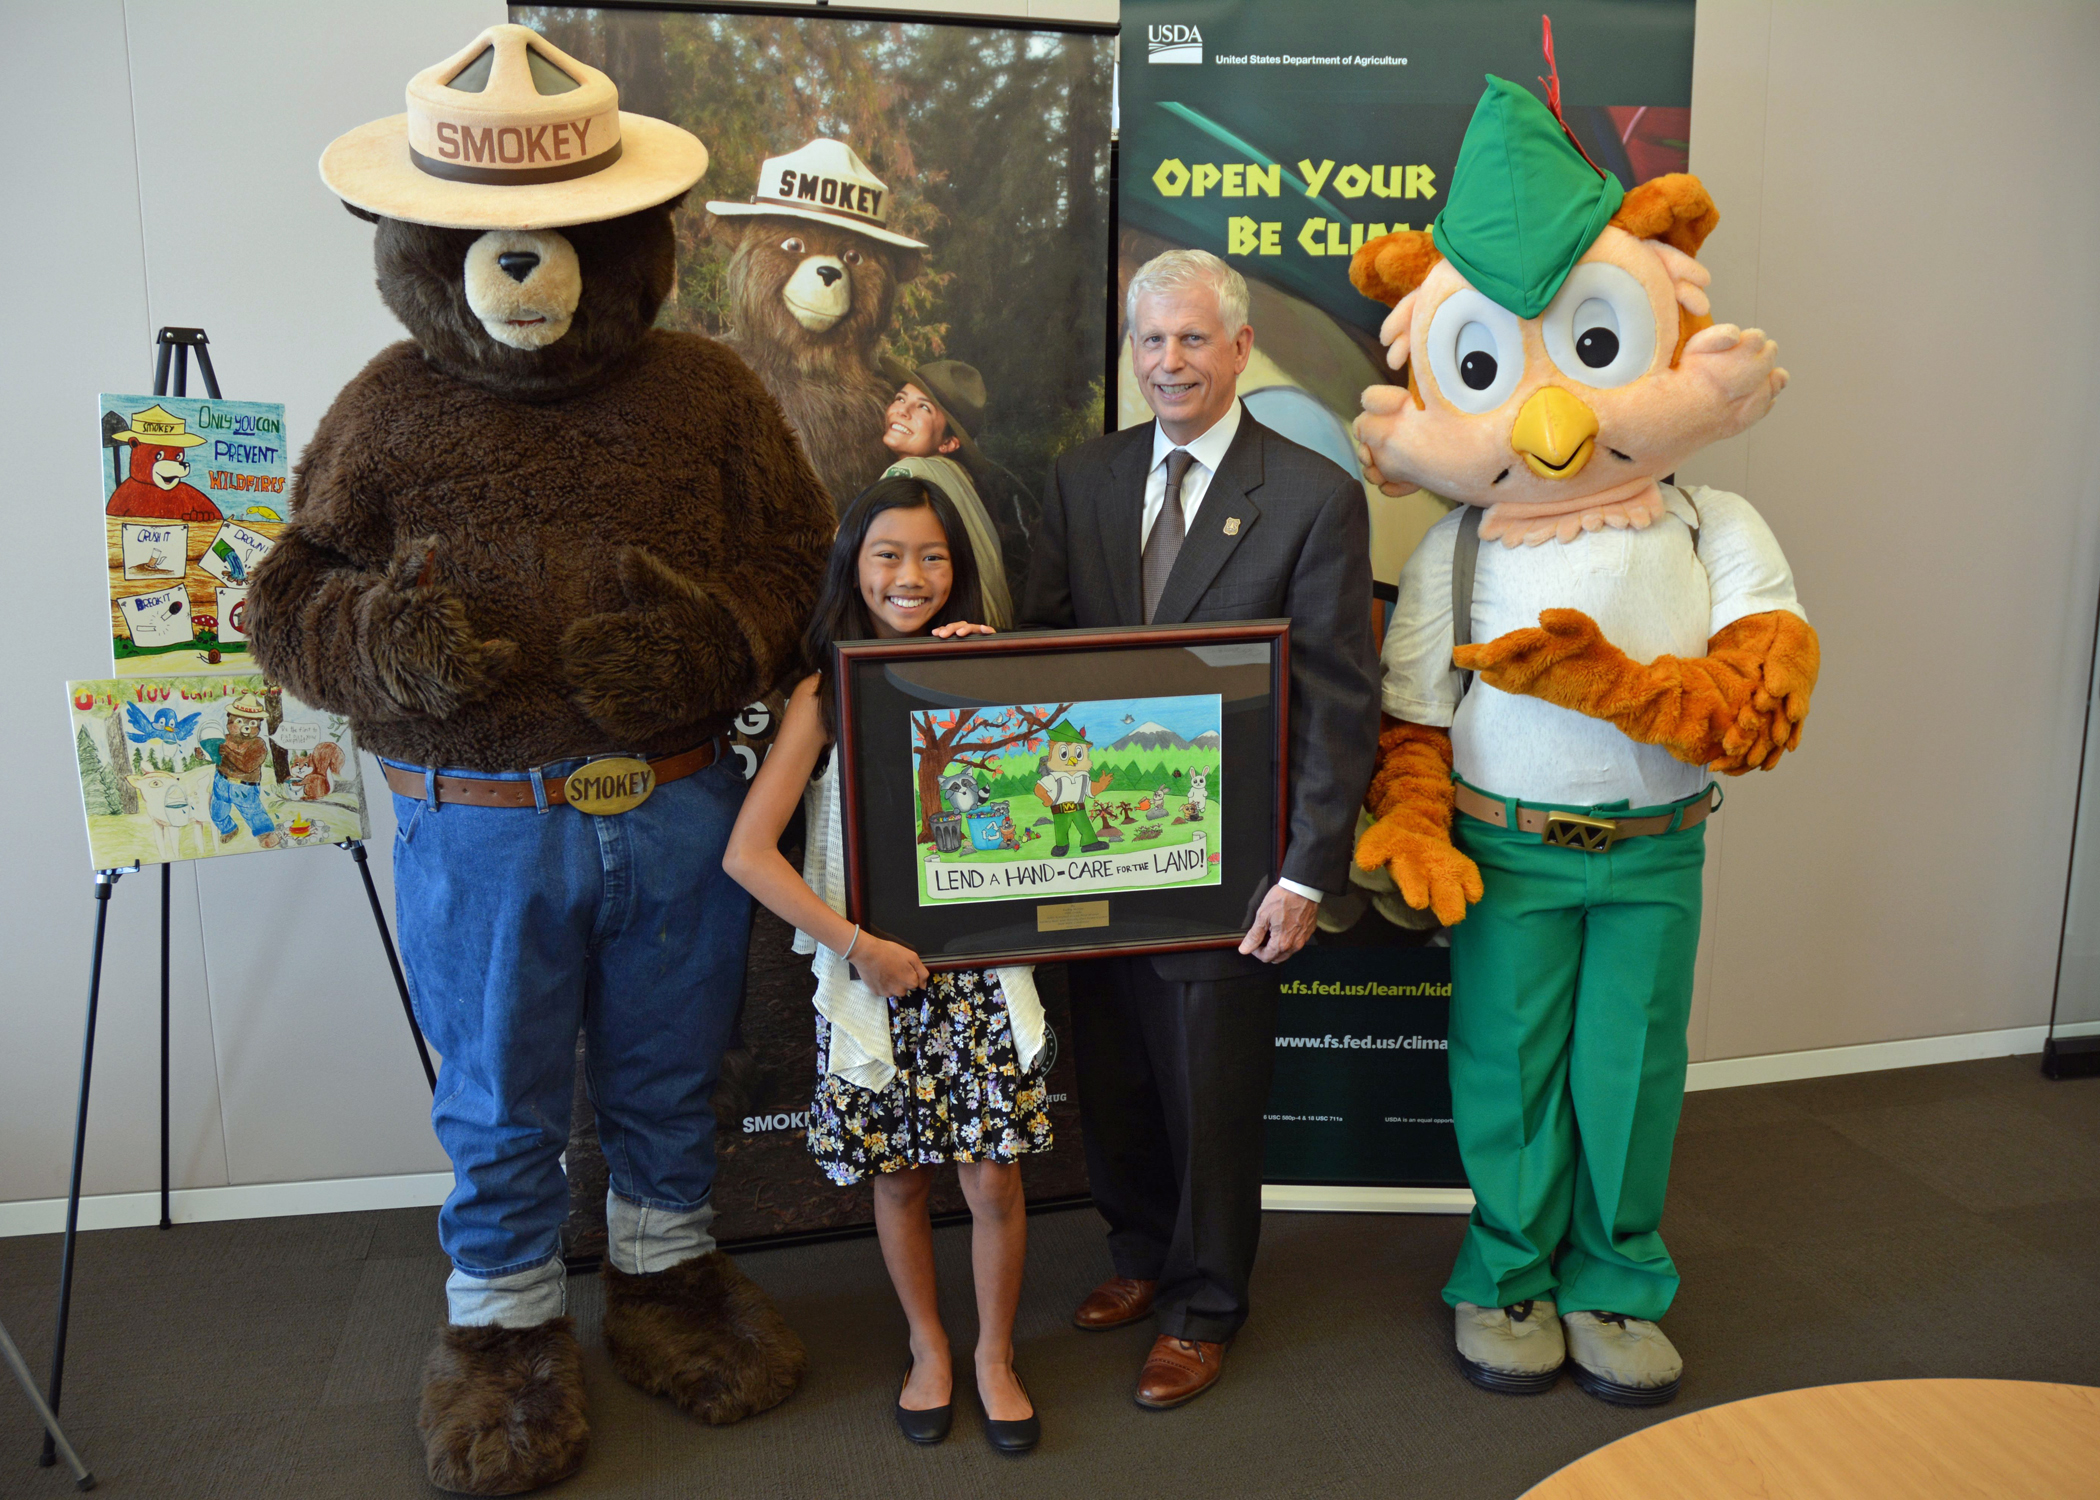 Audrey Morga, national winner of the 2015 National Smokey Bear and Woodsy Owl poster, stands with U.S. Forest Service Chief Tom Tidwell, Smokey Bear and Woodsy Owl. (Photo by Dominic Cumberland, U.S. Forest Service)